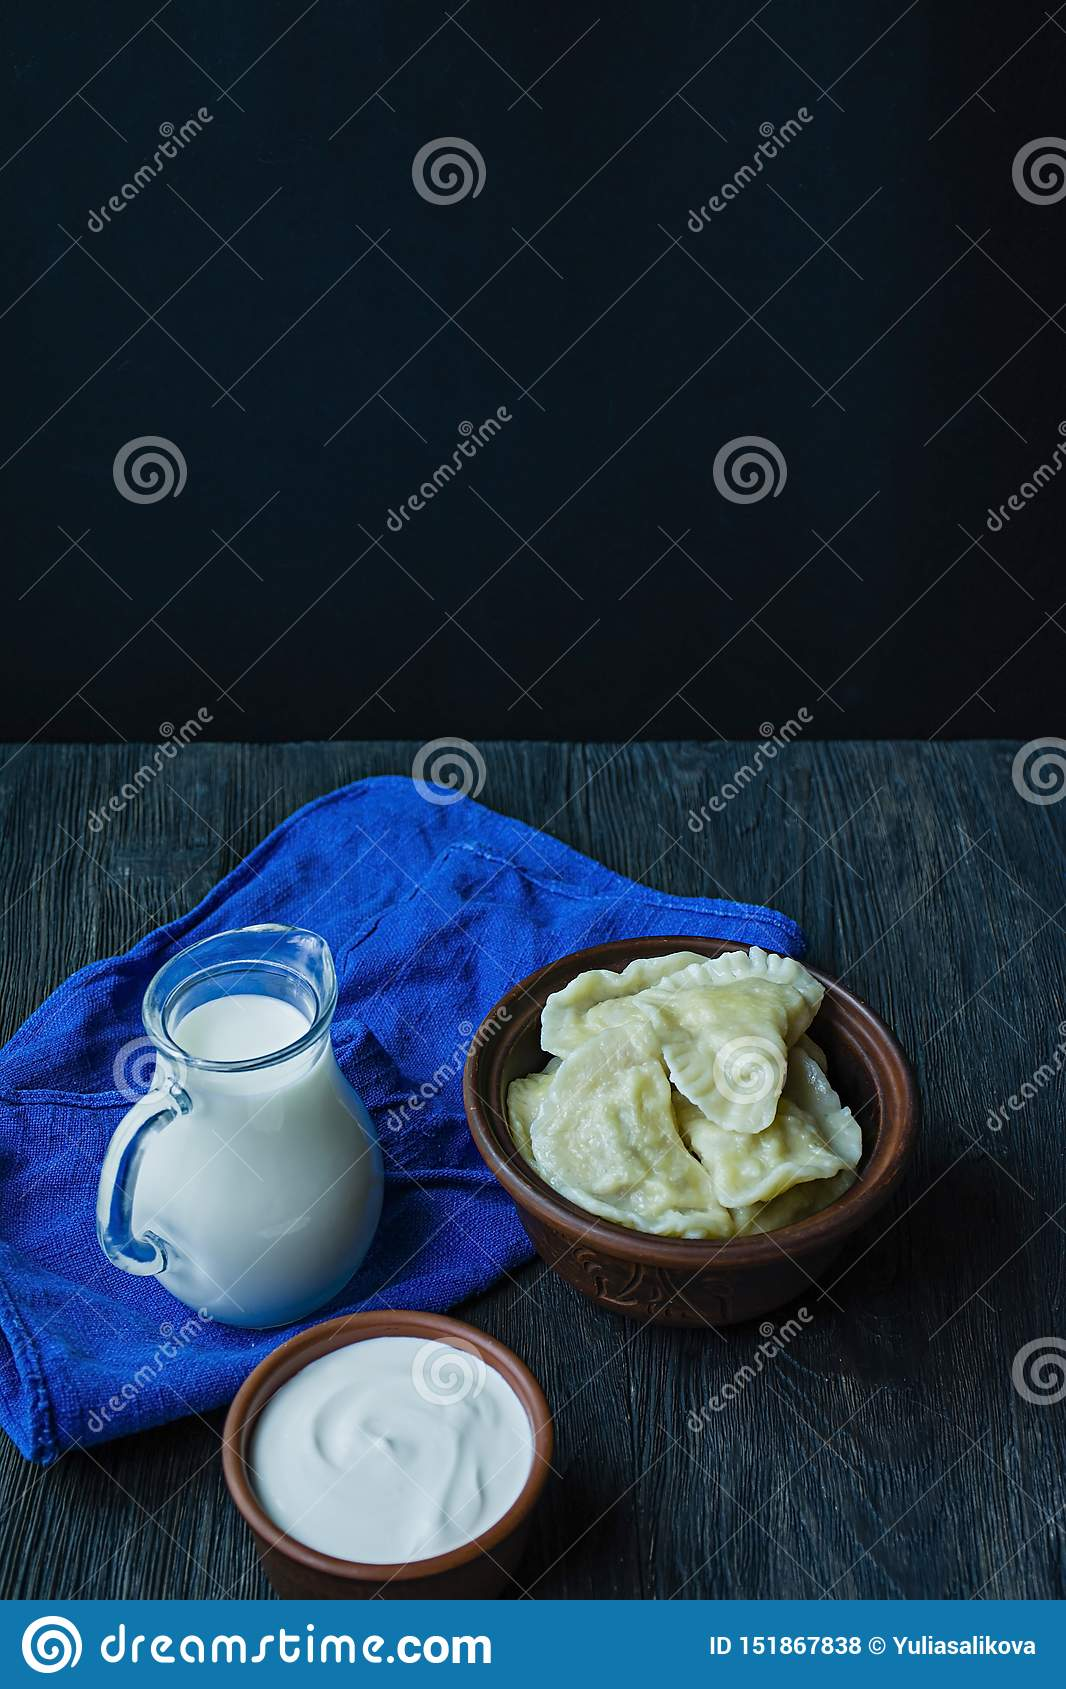 Dumplings with potatoes and cabbage. Sour cream, milk and greens. Traditional dish of Ukraine. Dark wooden background